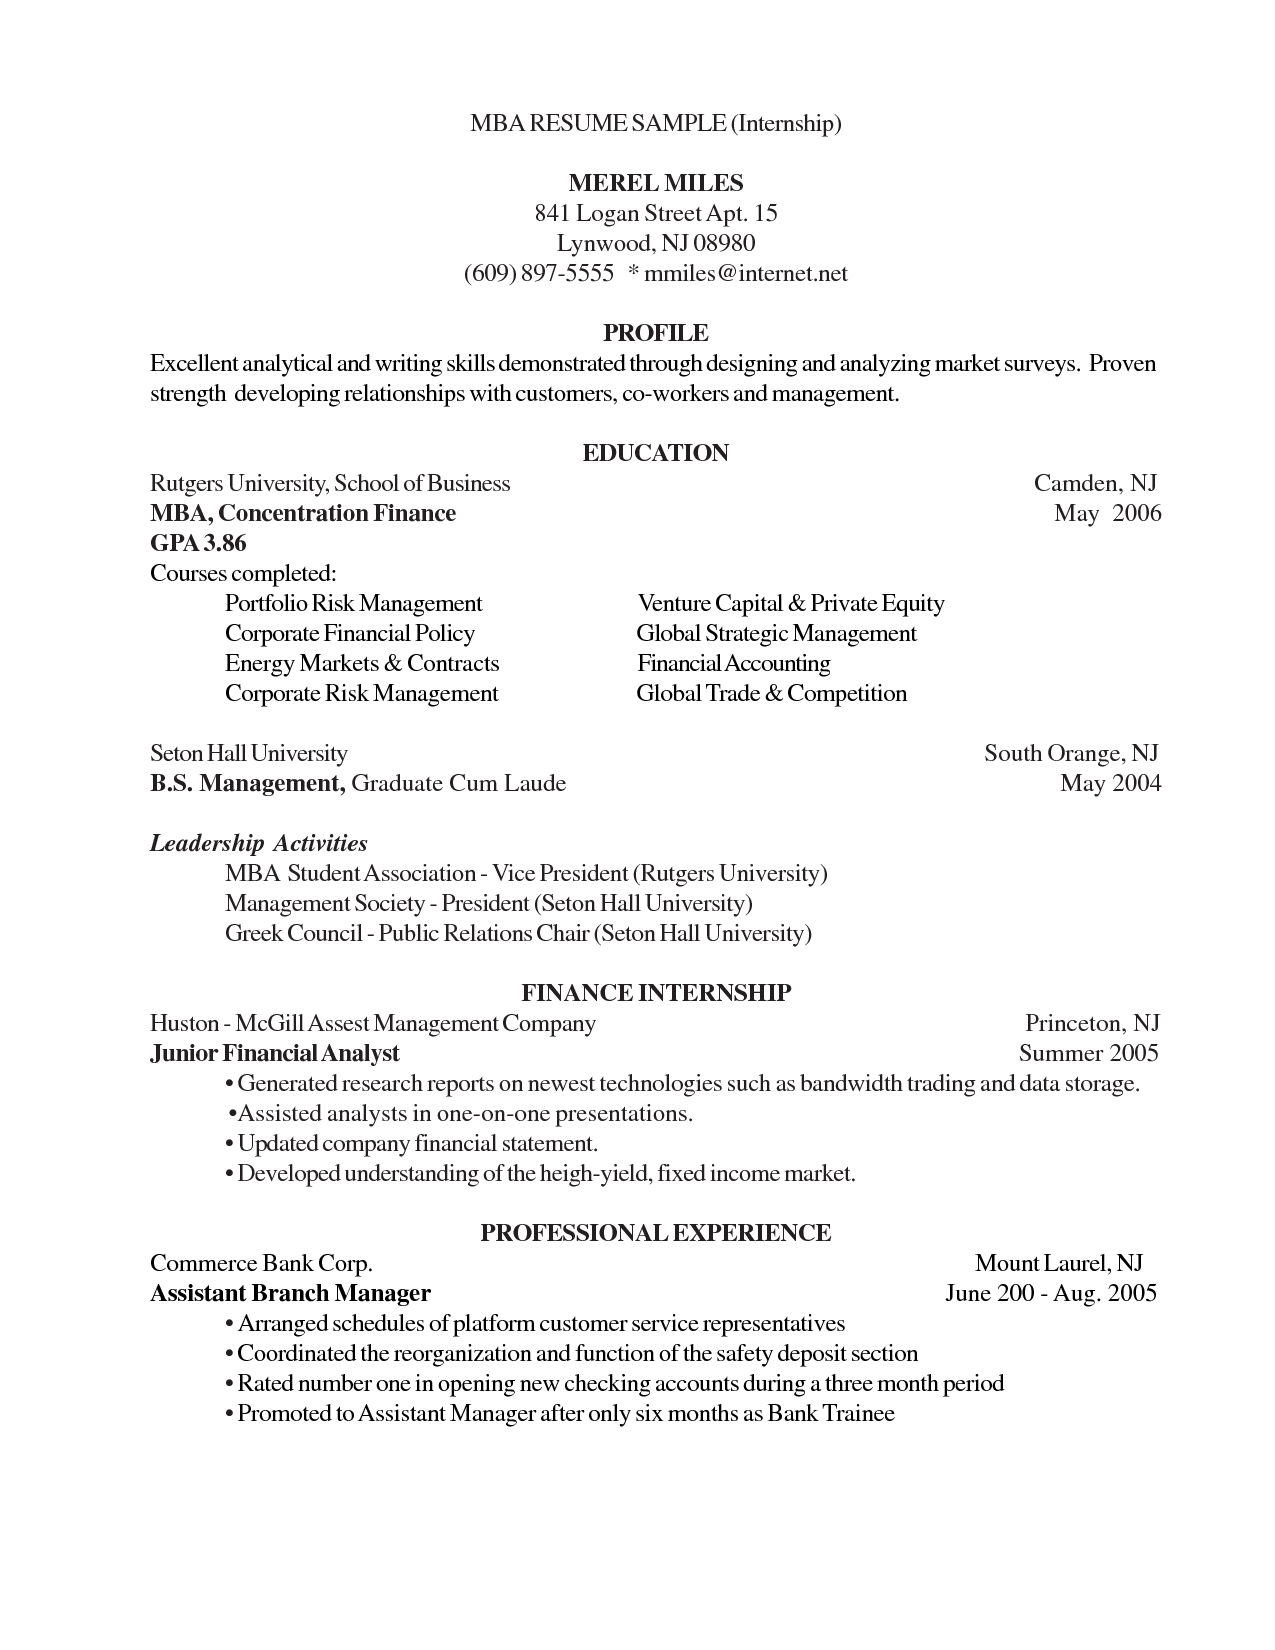 Resume Samples For High School Students Resume Sample Template Word Examples Resumes Responsibilities